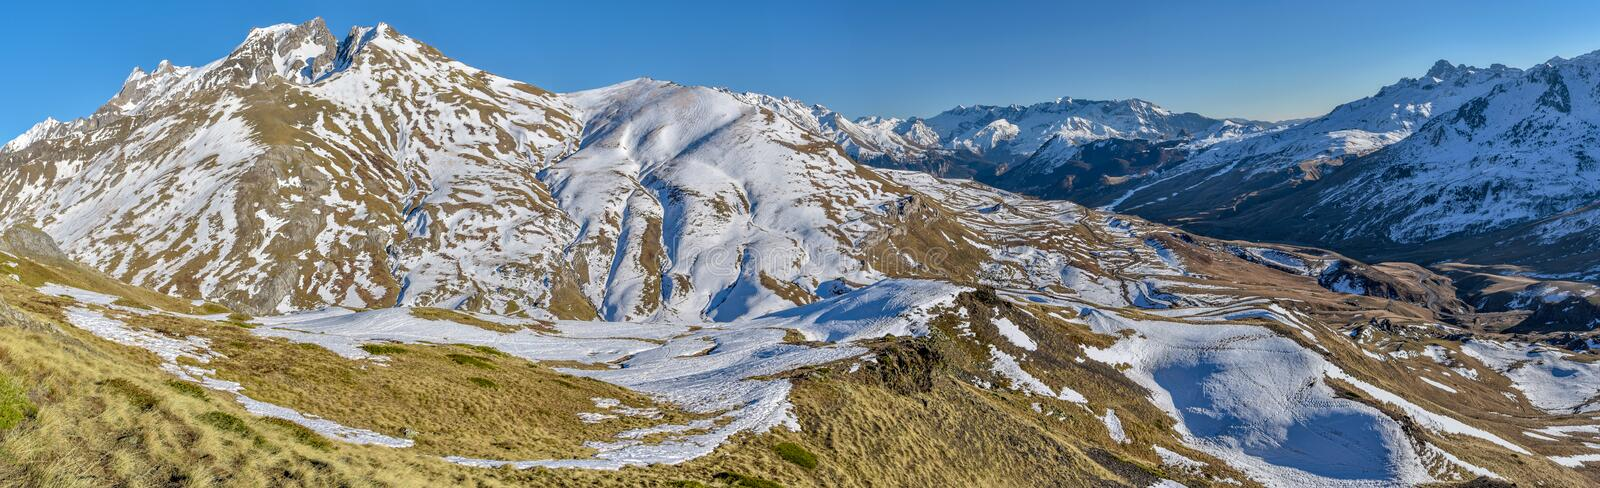 Panoramic view of upper Tena Valley in Spanish Pyrenees from eastern slopes close to Portalet mountain pass. Aragon, Huesca royalty free stock photography